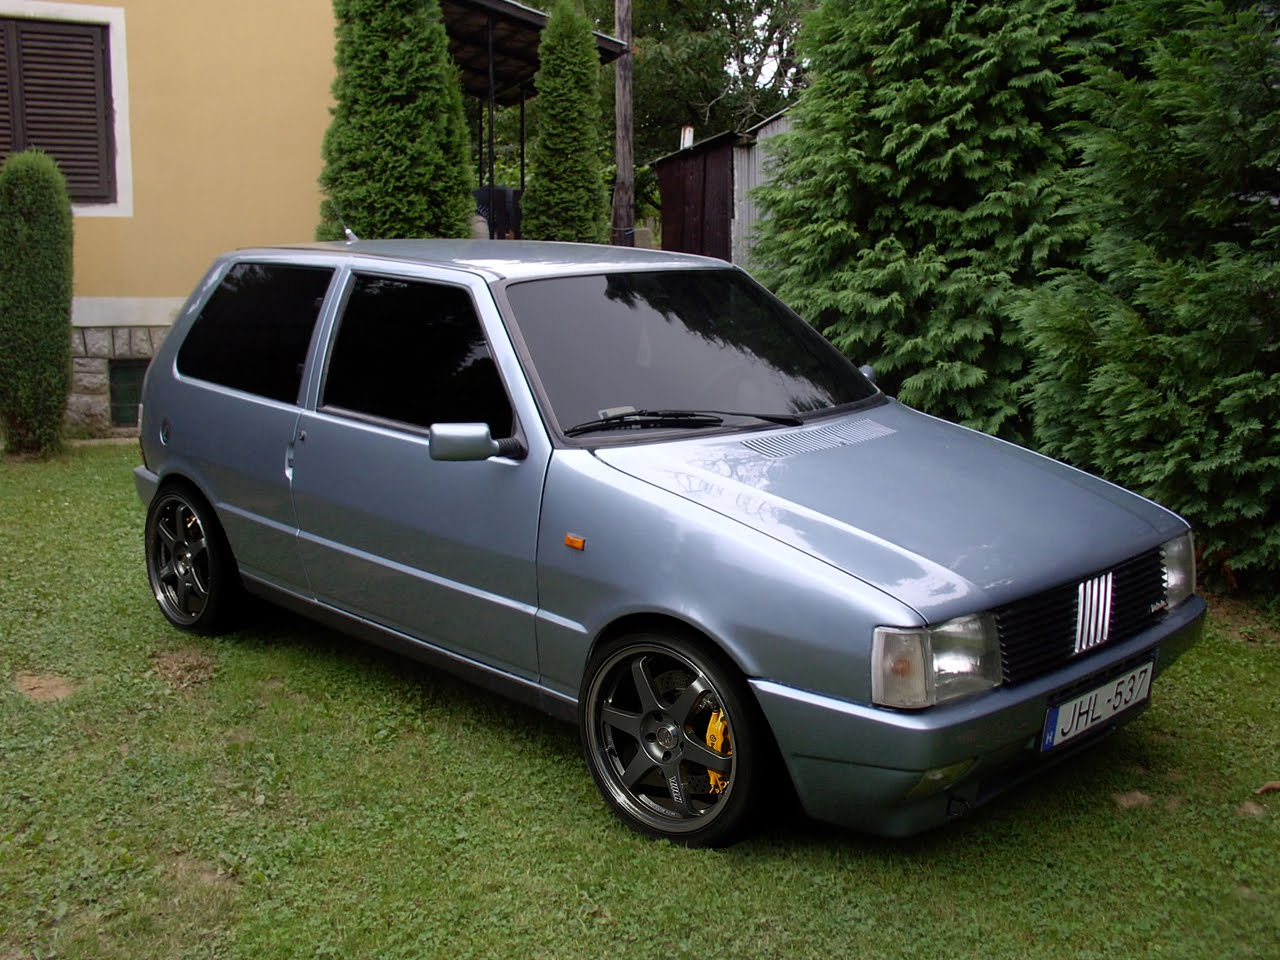 Fiat uno 2001 review amazing pictures and images look at the car fiat uno 2001 photo 1 altavistaventures Images